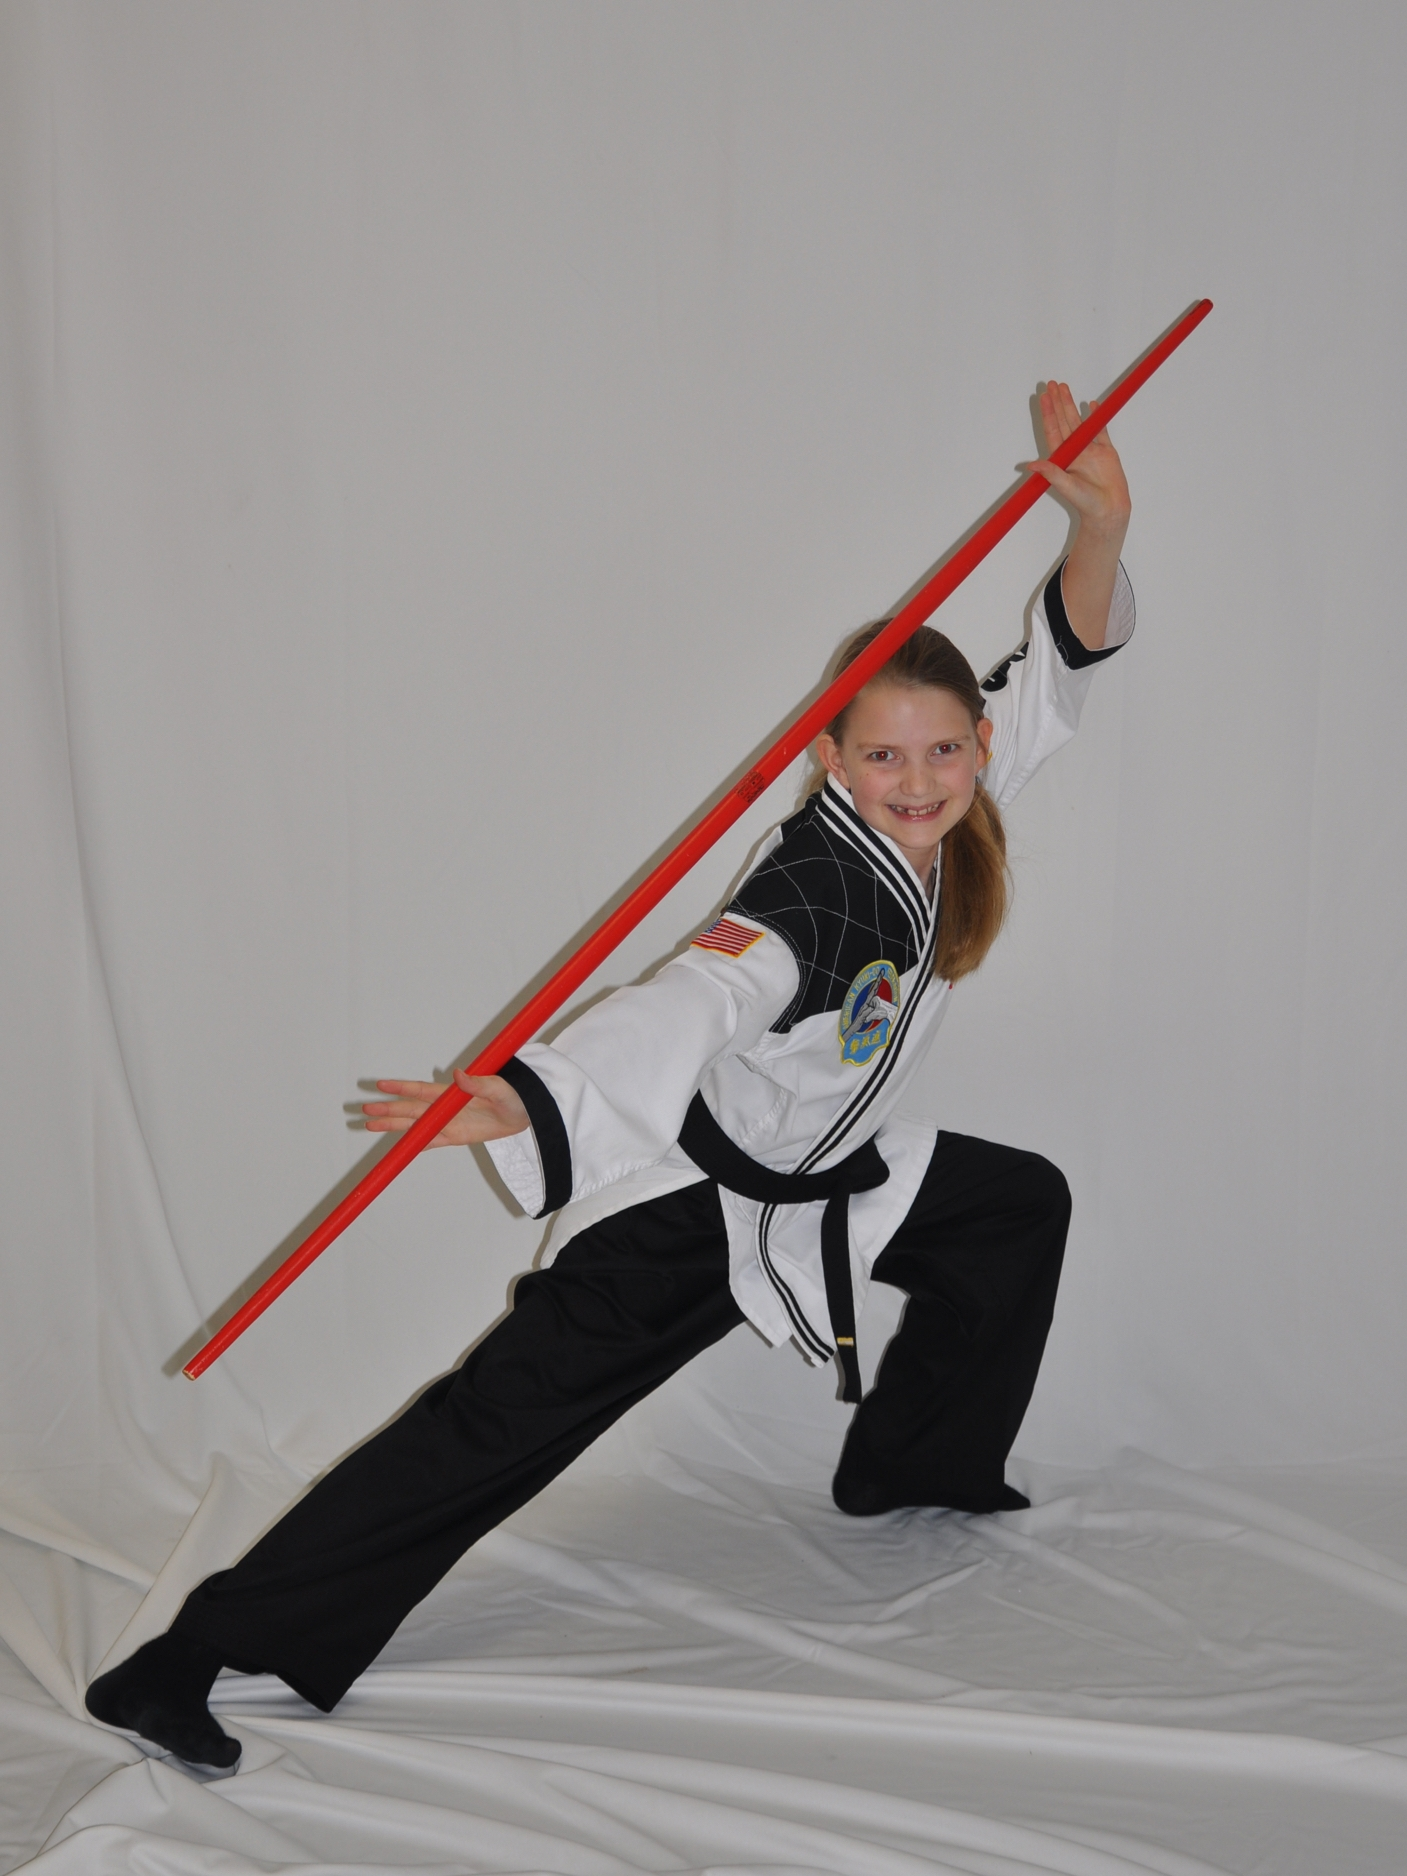 My daughter, a fearless leader, demonstrating a classical Bo Staff stance shortly after receiving her black belt.